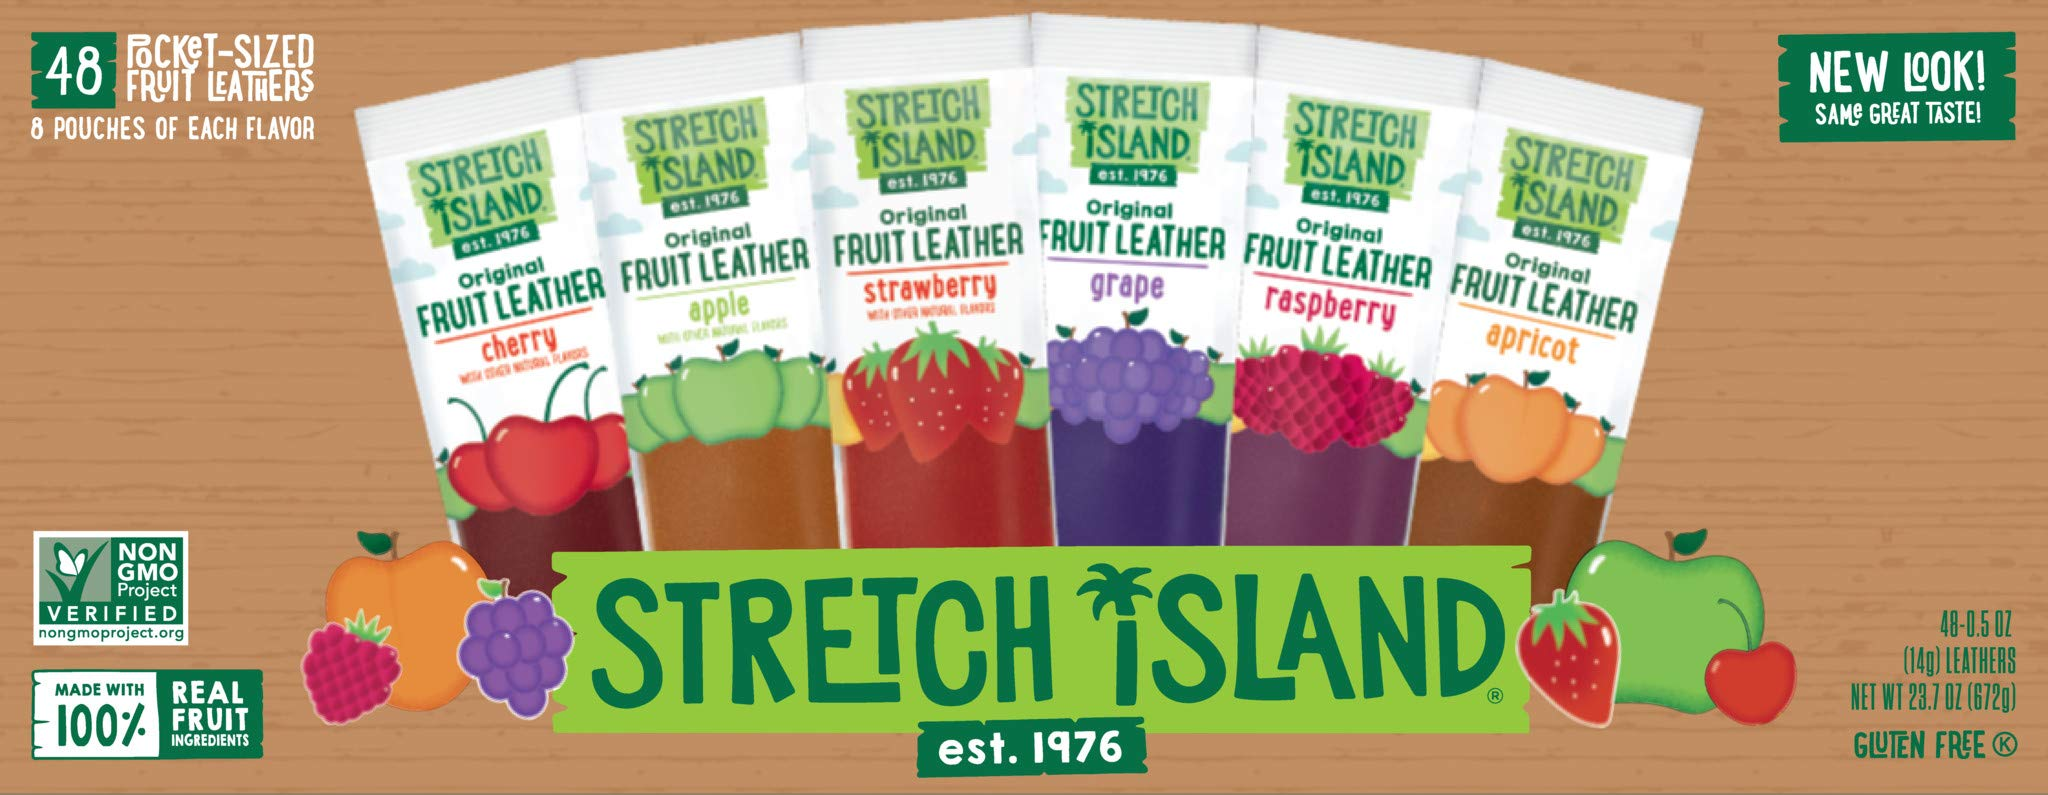 Stretch Island Fruit Leather Snacks Variety Pack, 0.5 Ounce, Pack of 48 by Stretch Island